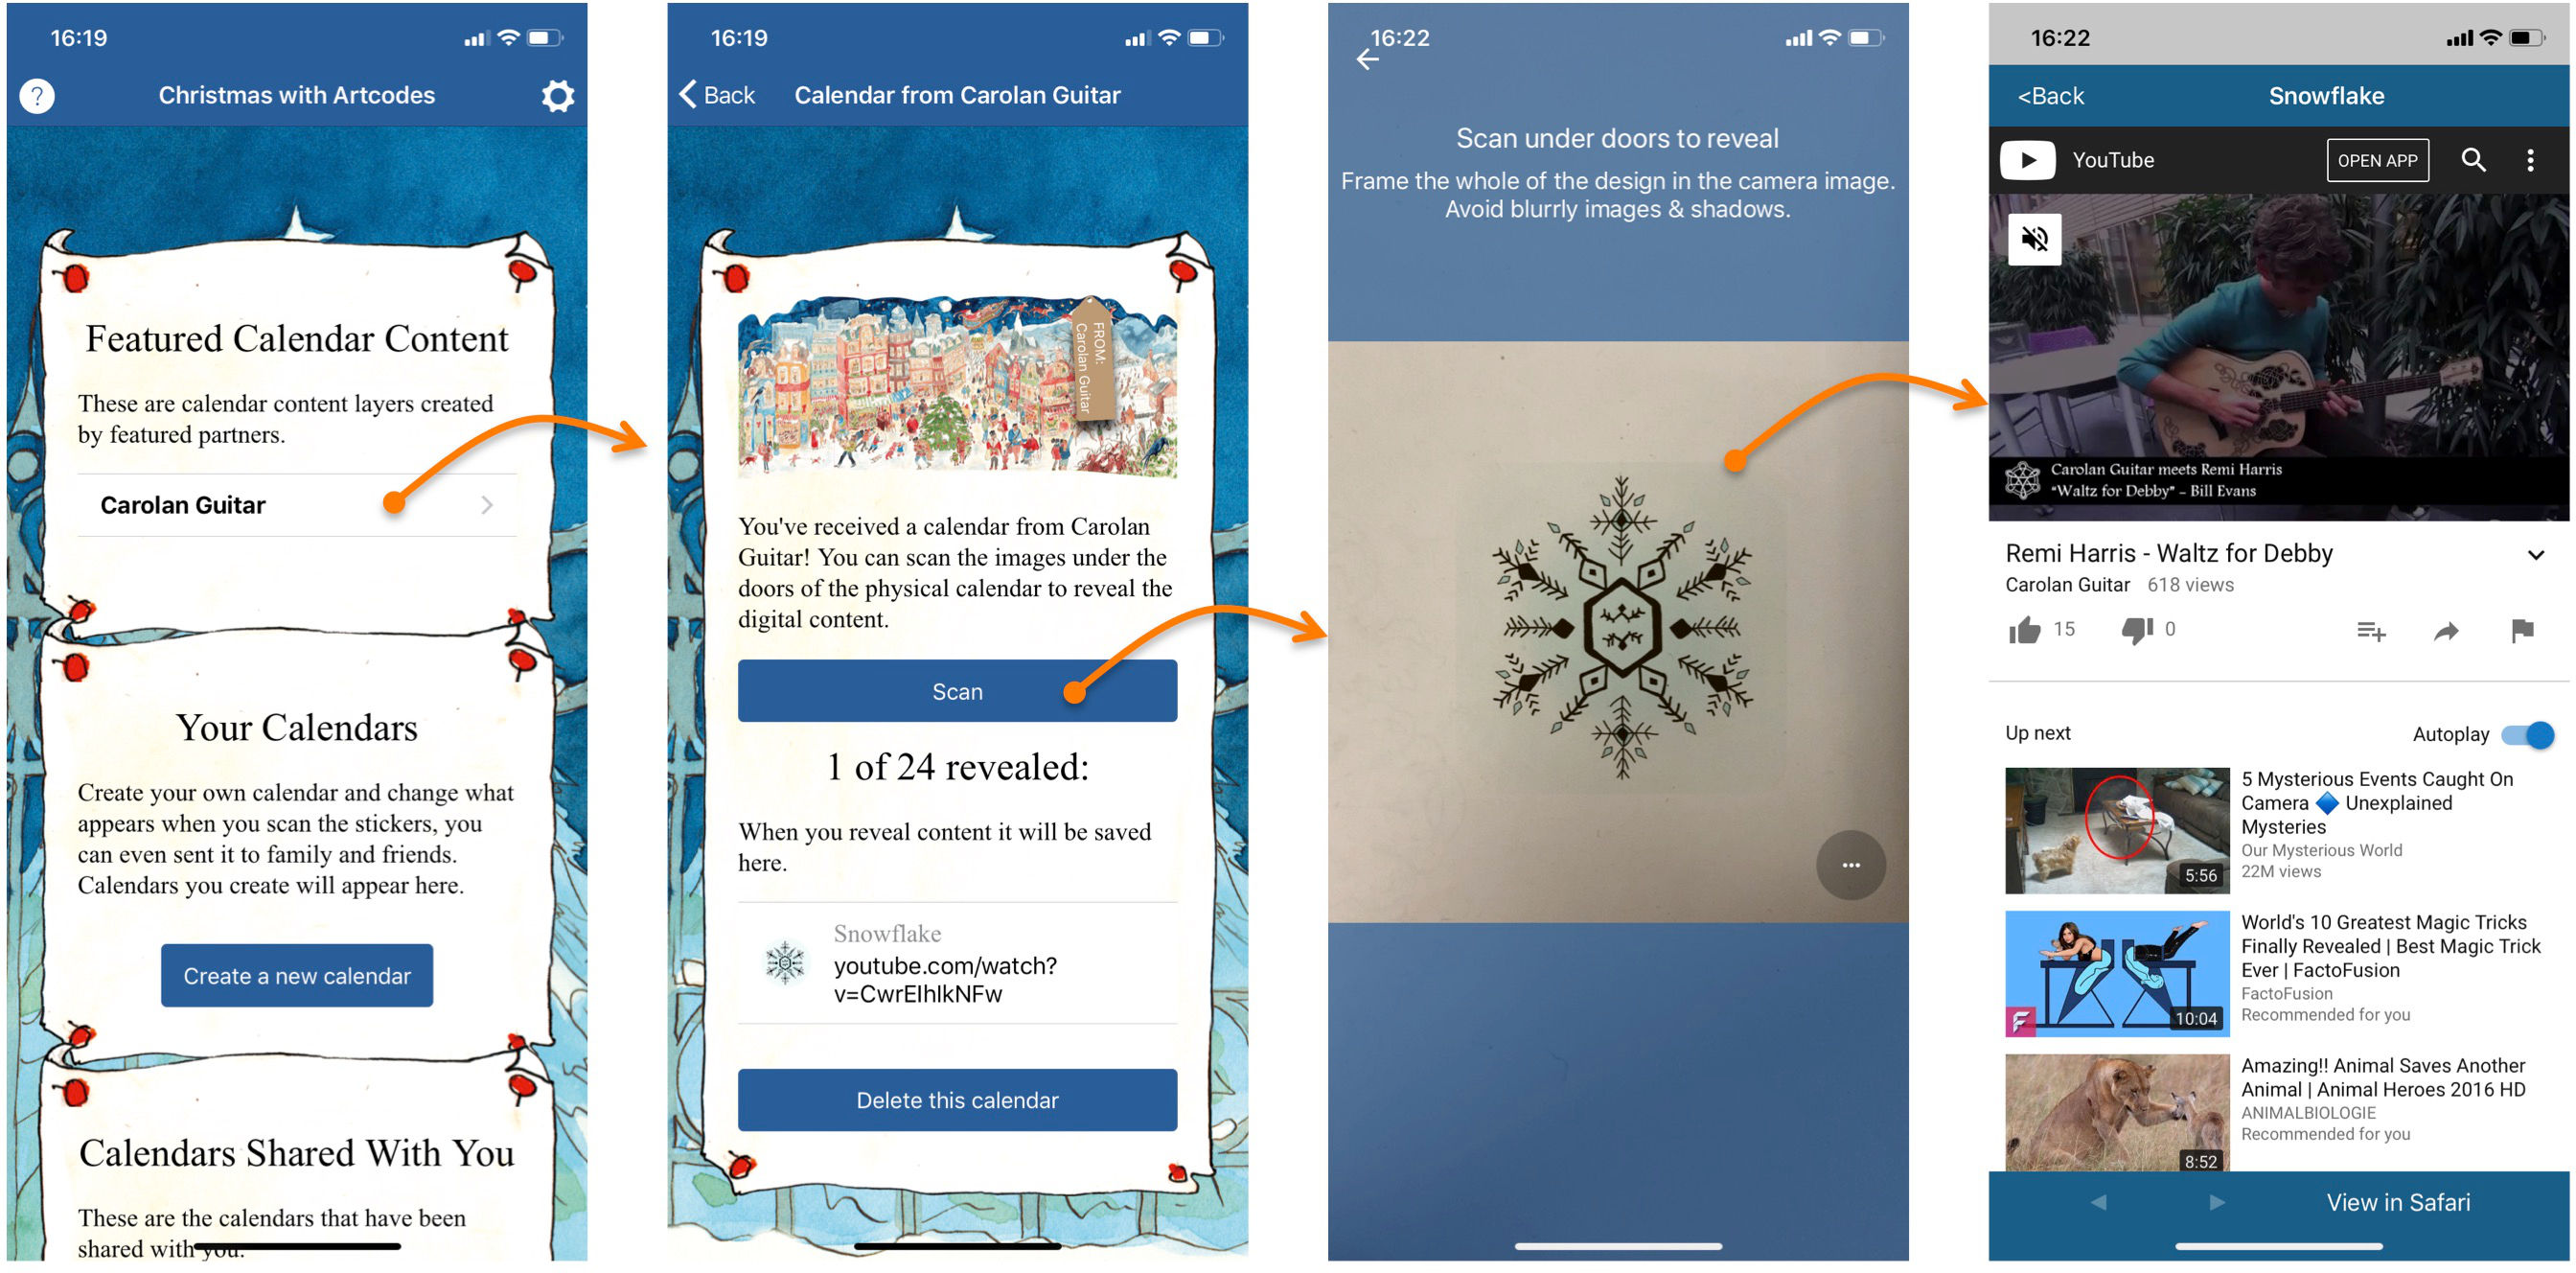 How to use Christmas with Artcodes - Artcodes co uk